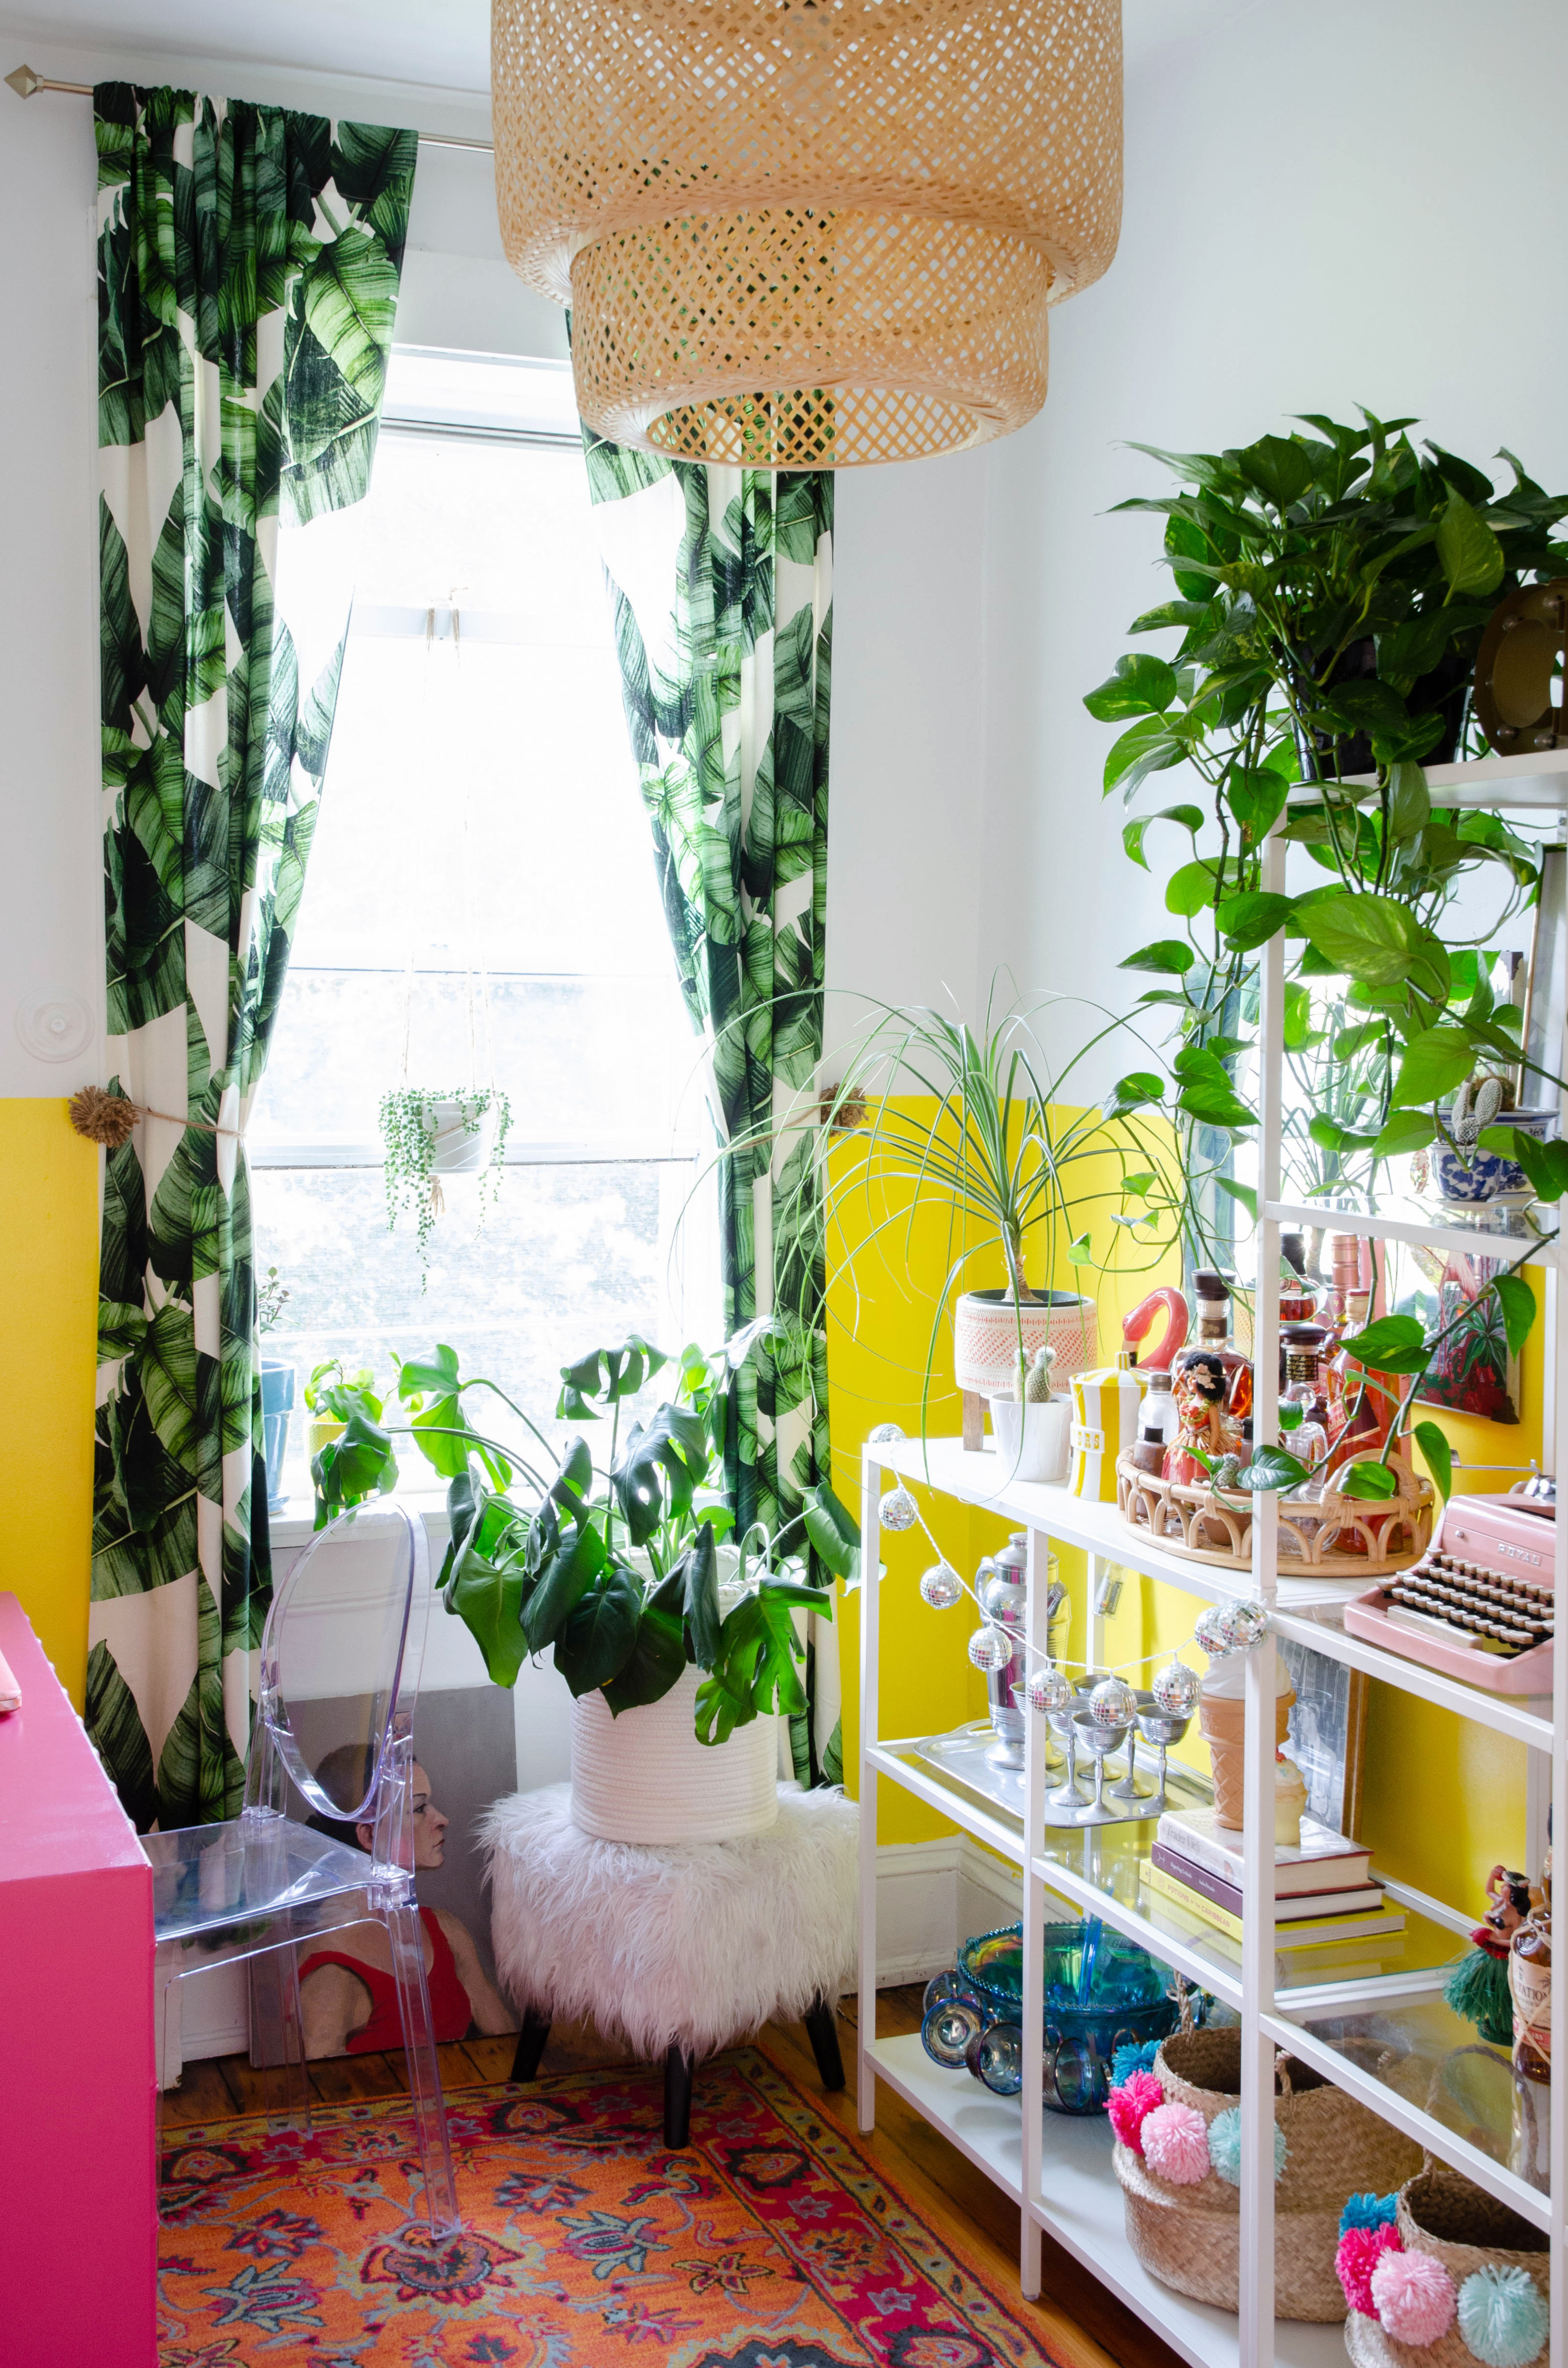 Tour Cocktail Blogger Arsenic Lace's Colorful Home